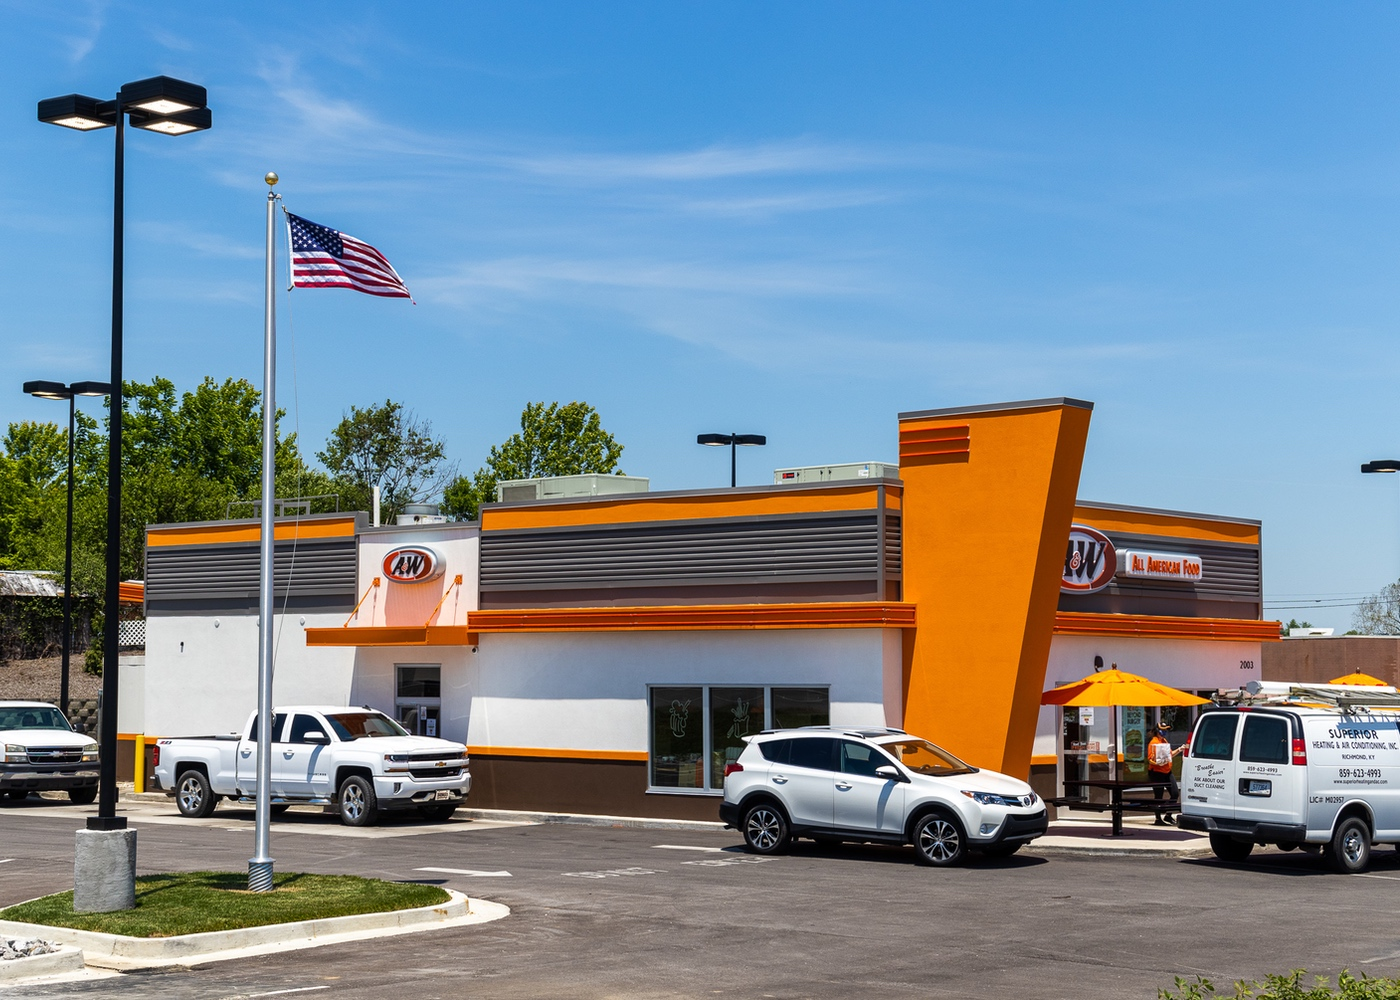 Exterior side view photo of A&W Restaurant showing cars in drive-thru and team member walking bag out to car.